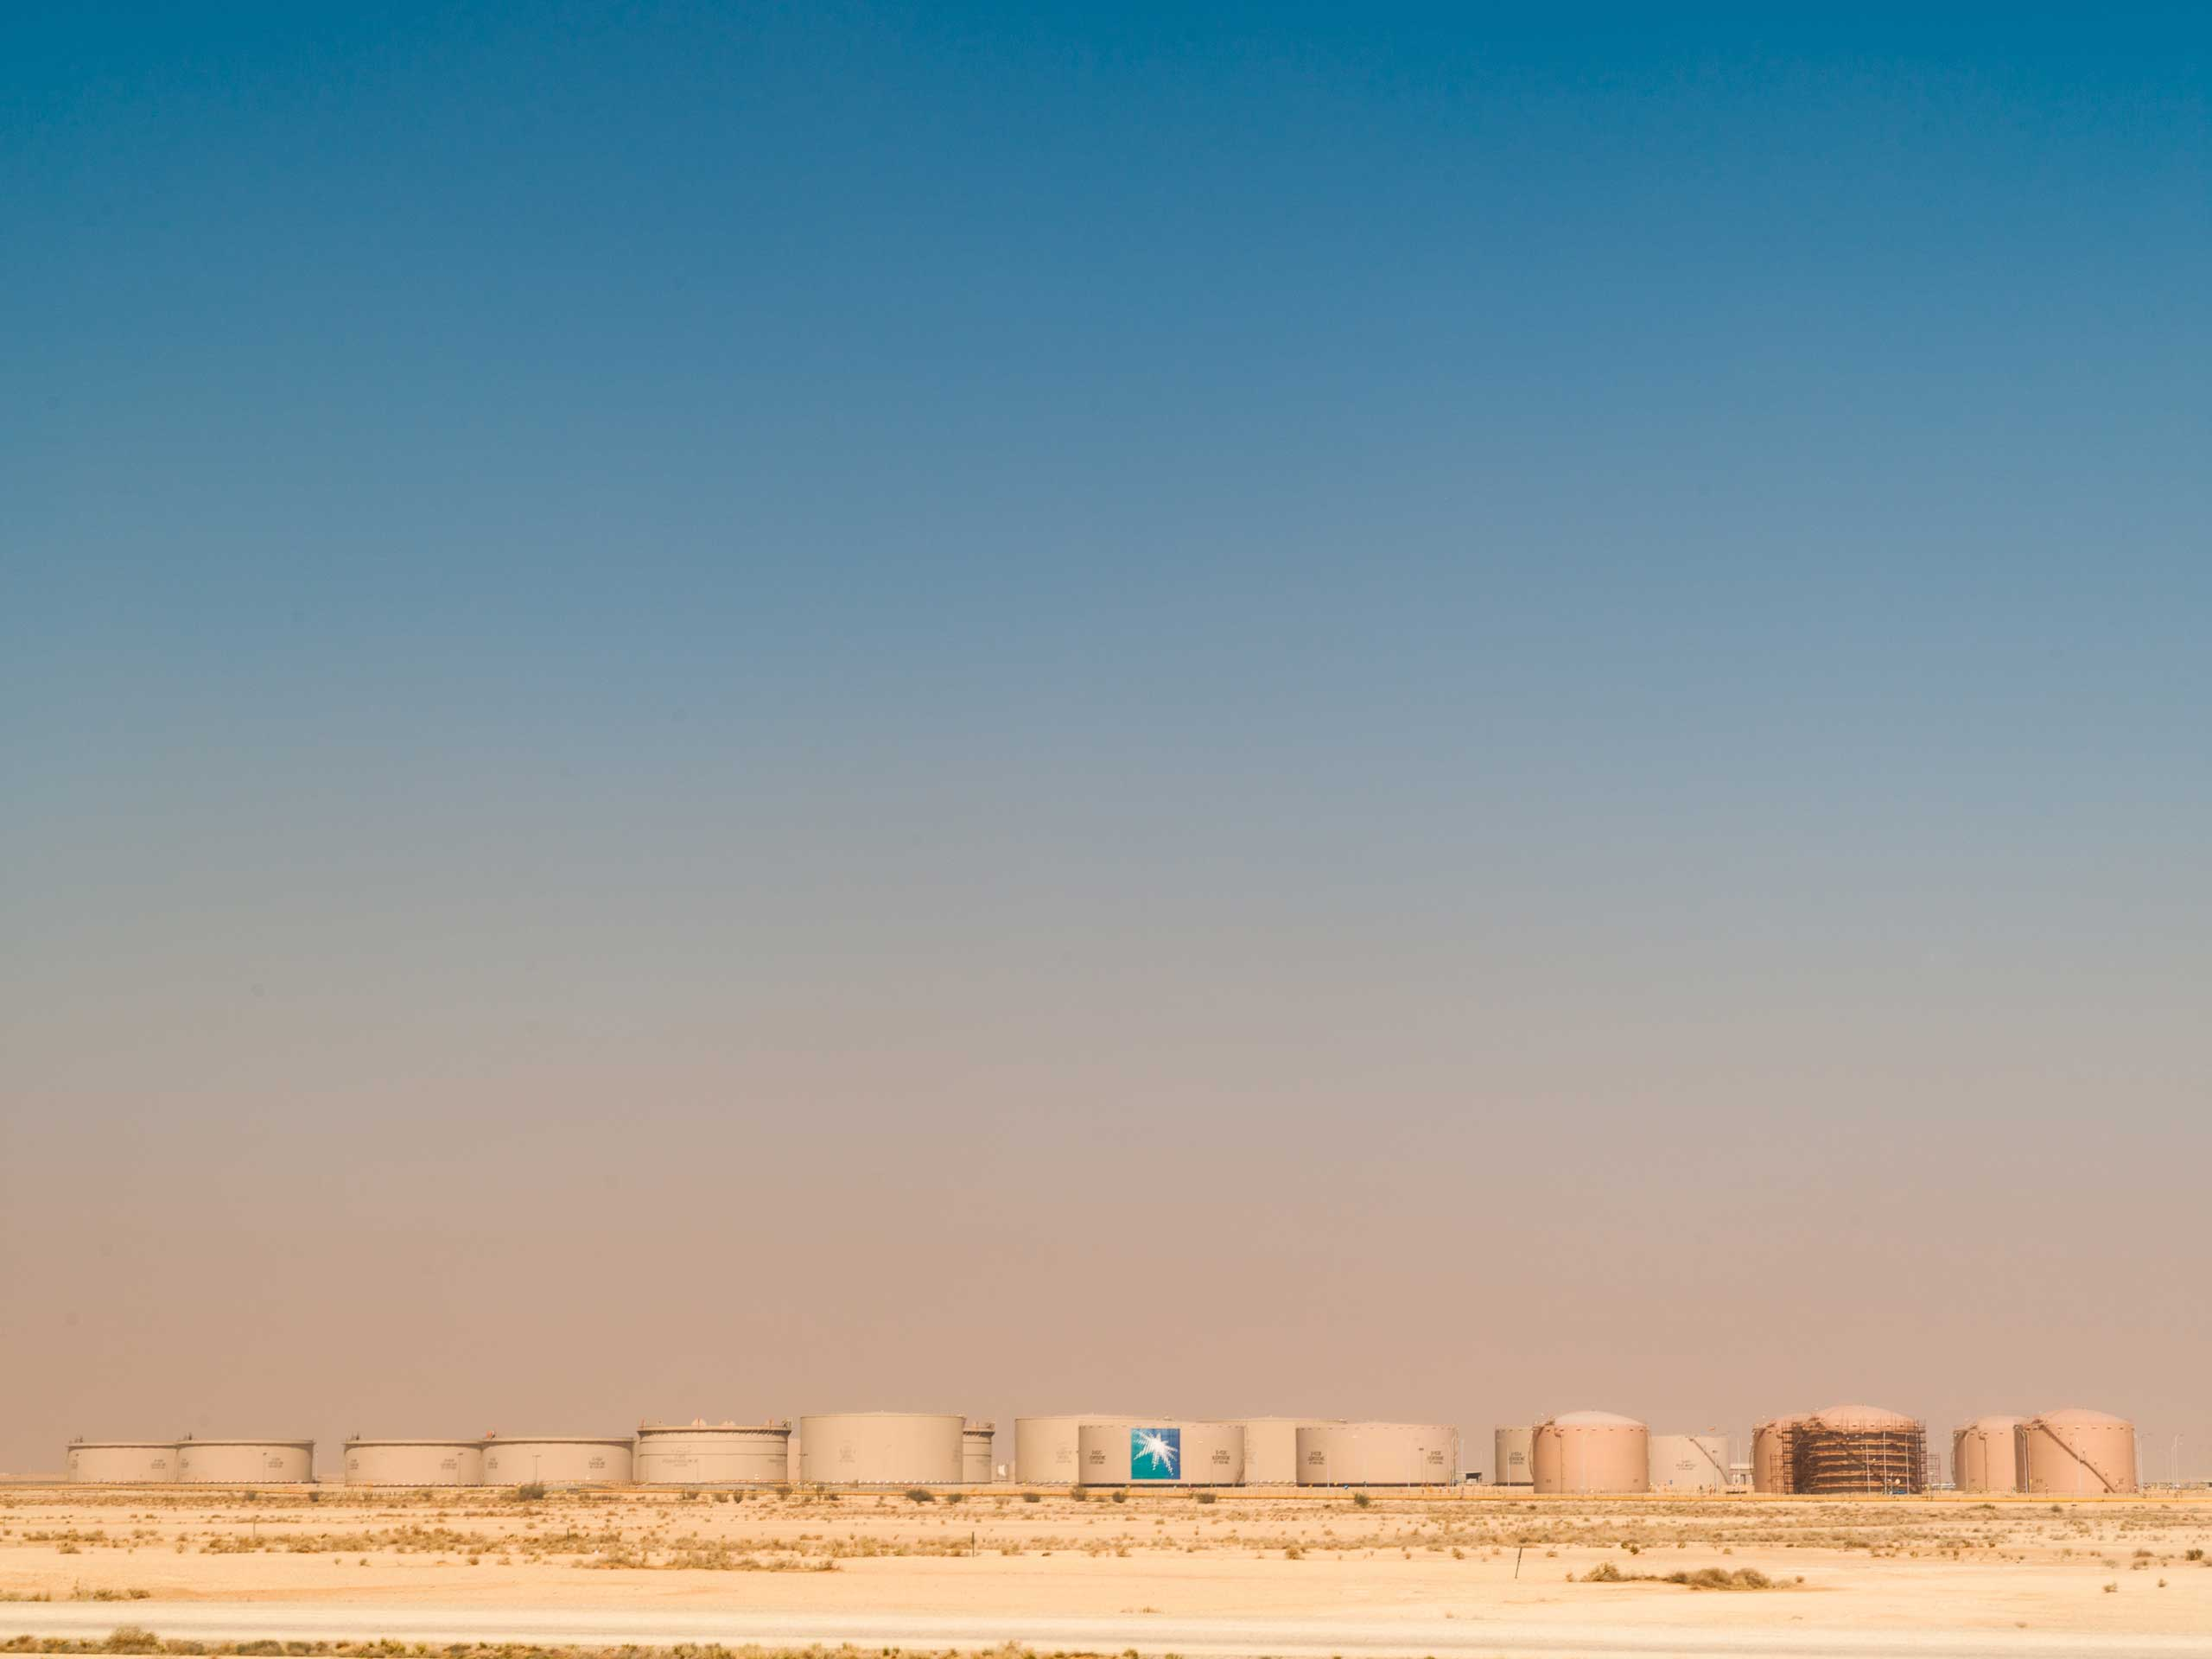 A city of oil tanks, one of many tank farms in the Eastern Province.